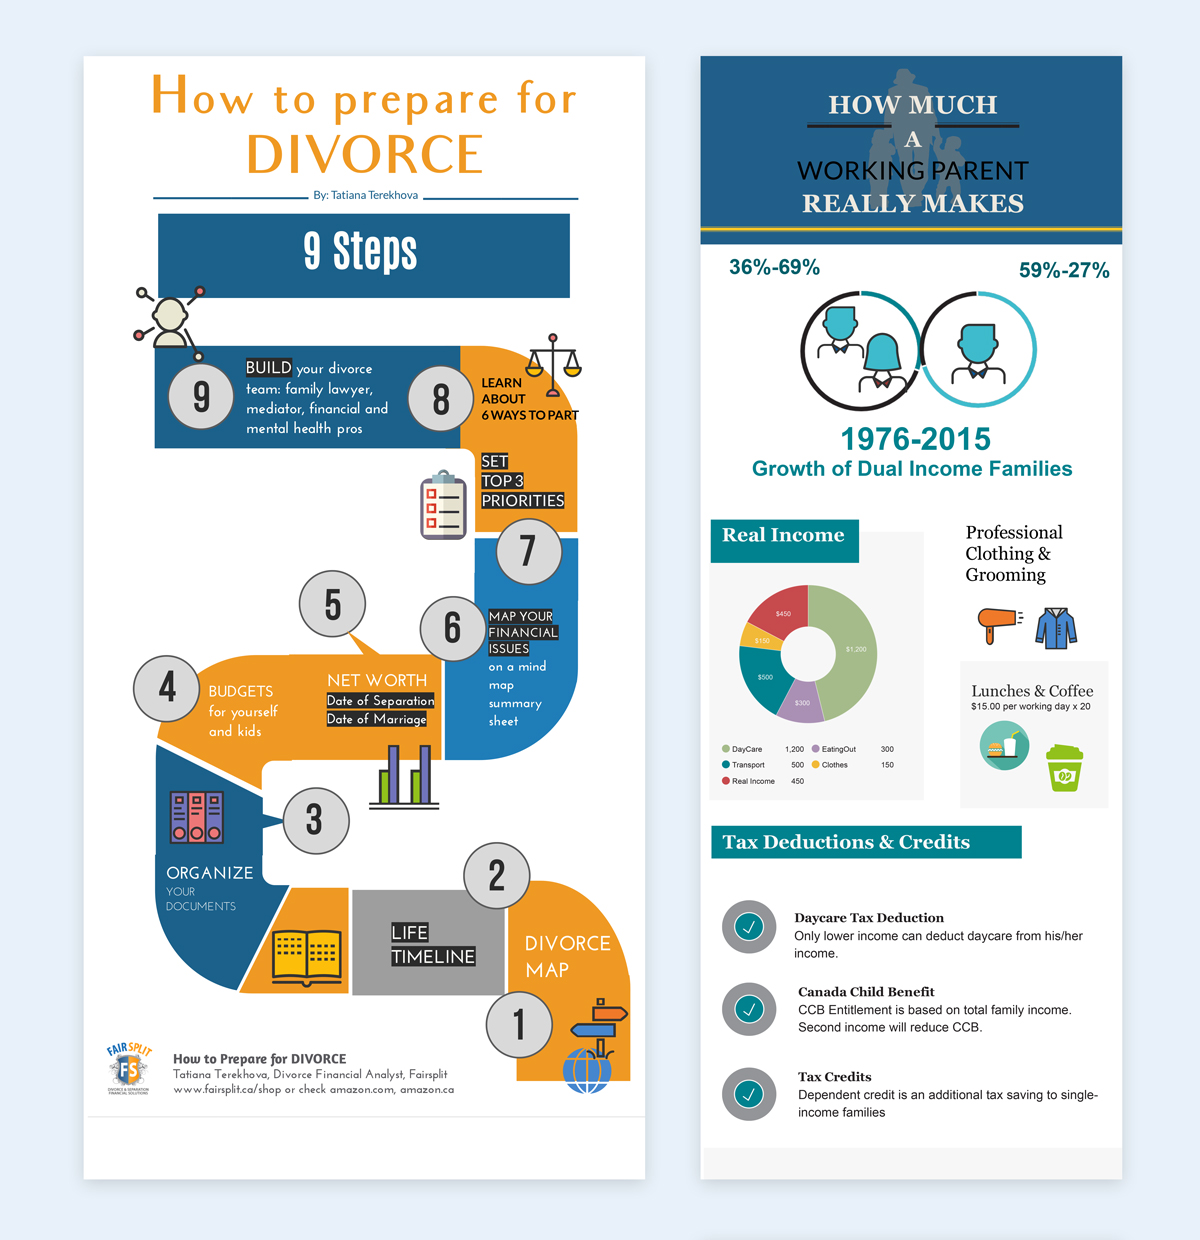 how to prepare for divorce infographic How a Divorce Financial Analyst Is Using Infographics to Reach a Wider Audience